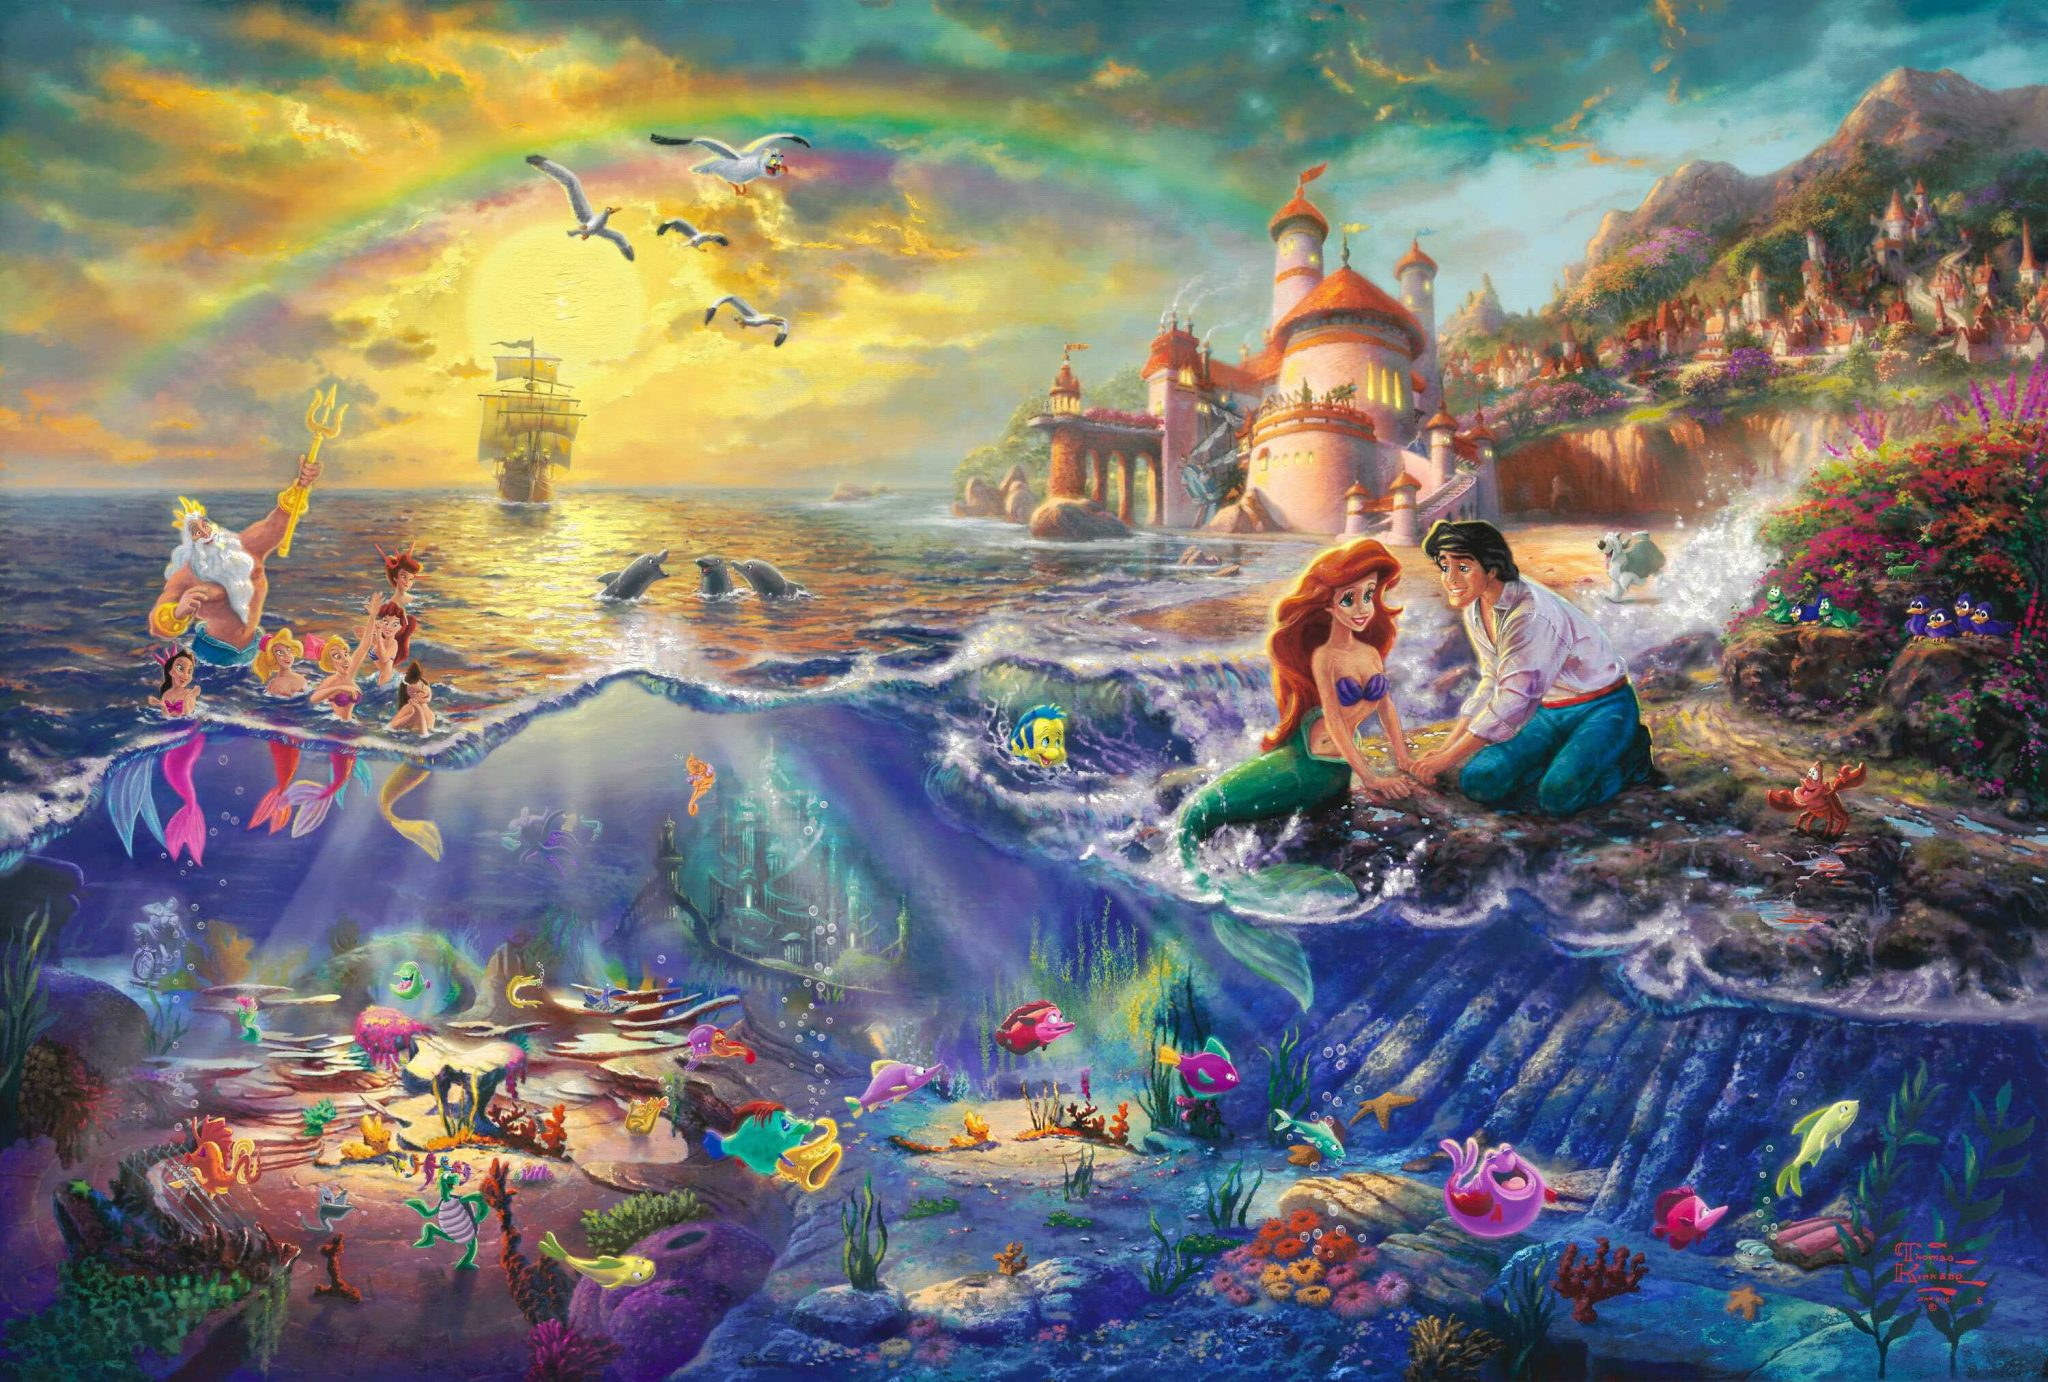 We've gathered more than 5 million images uploaded by our users and sorted them by the most popular ones. Wallpaper Disney Little Mermaid Wallpaper, Castle, Cartoon